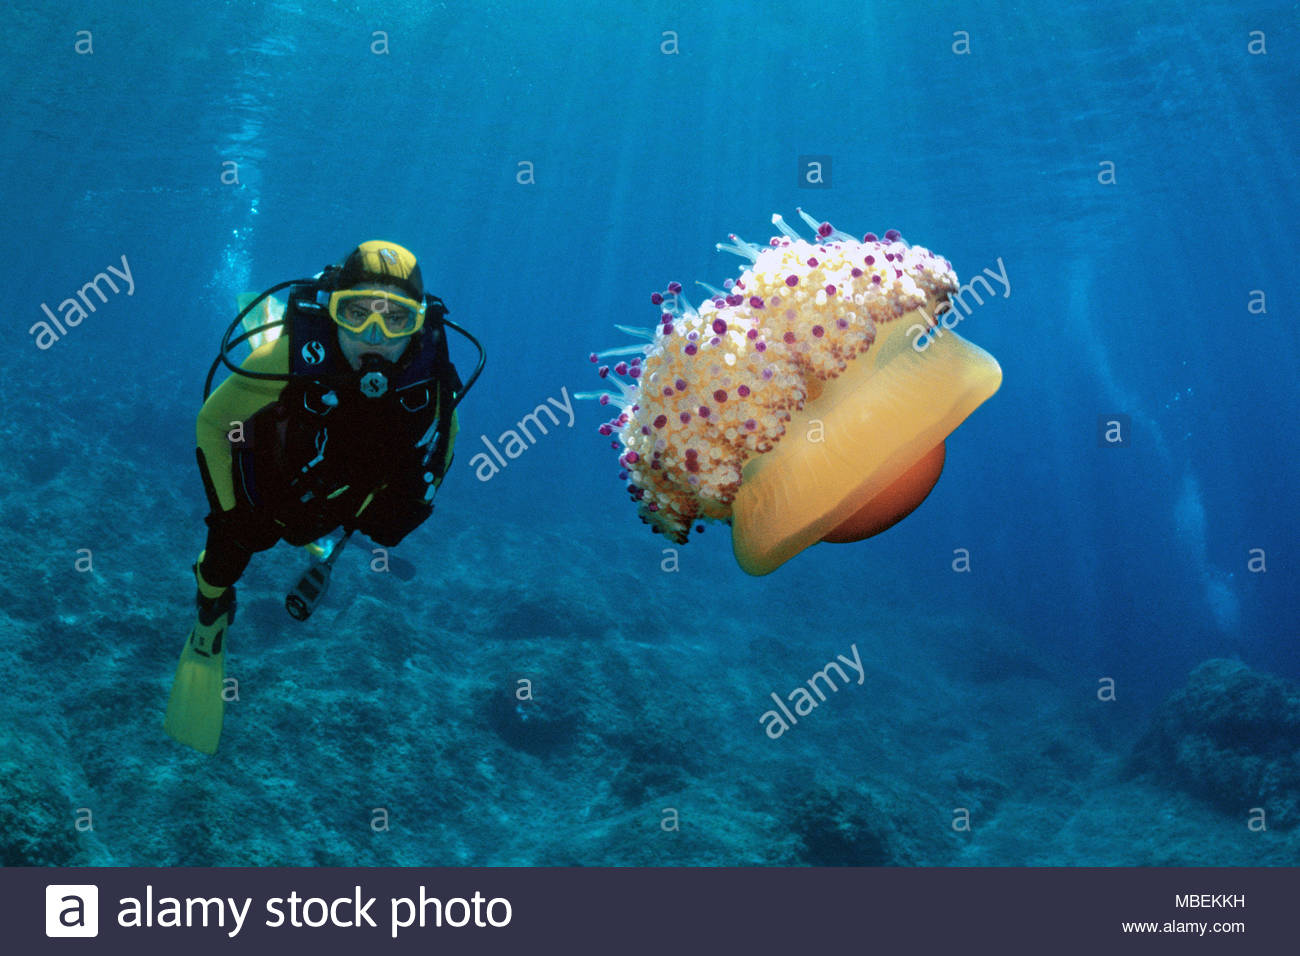 Scuba diver and Fried Egg Jellyfish (Cotylorhiza tuberculata) also known as Egg jellyfish, Mediterranean Jellyfish or Blubber jelly, Croatia - Stock Image